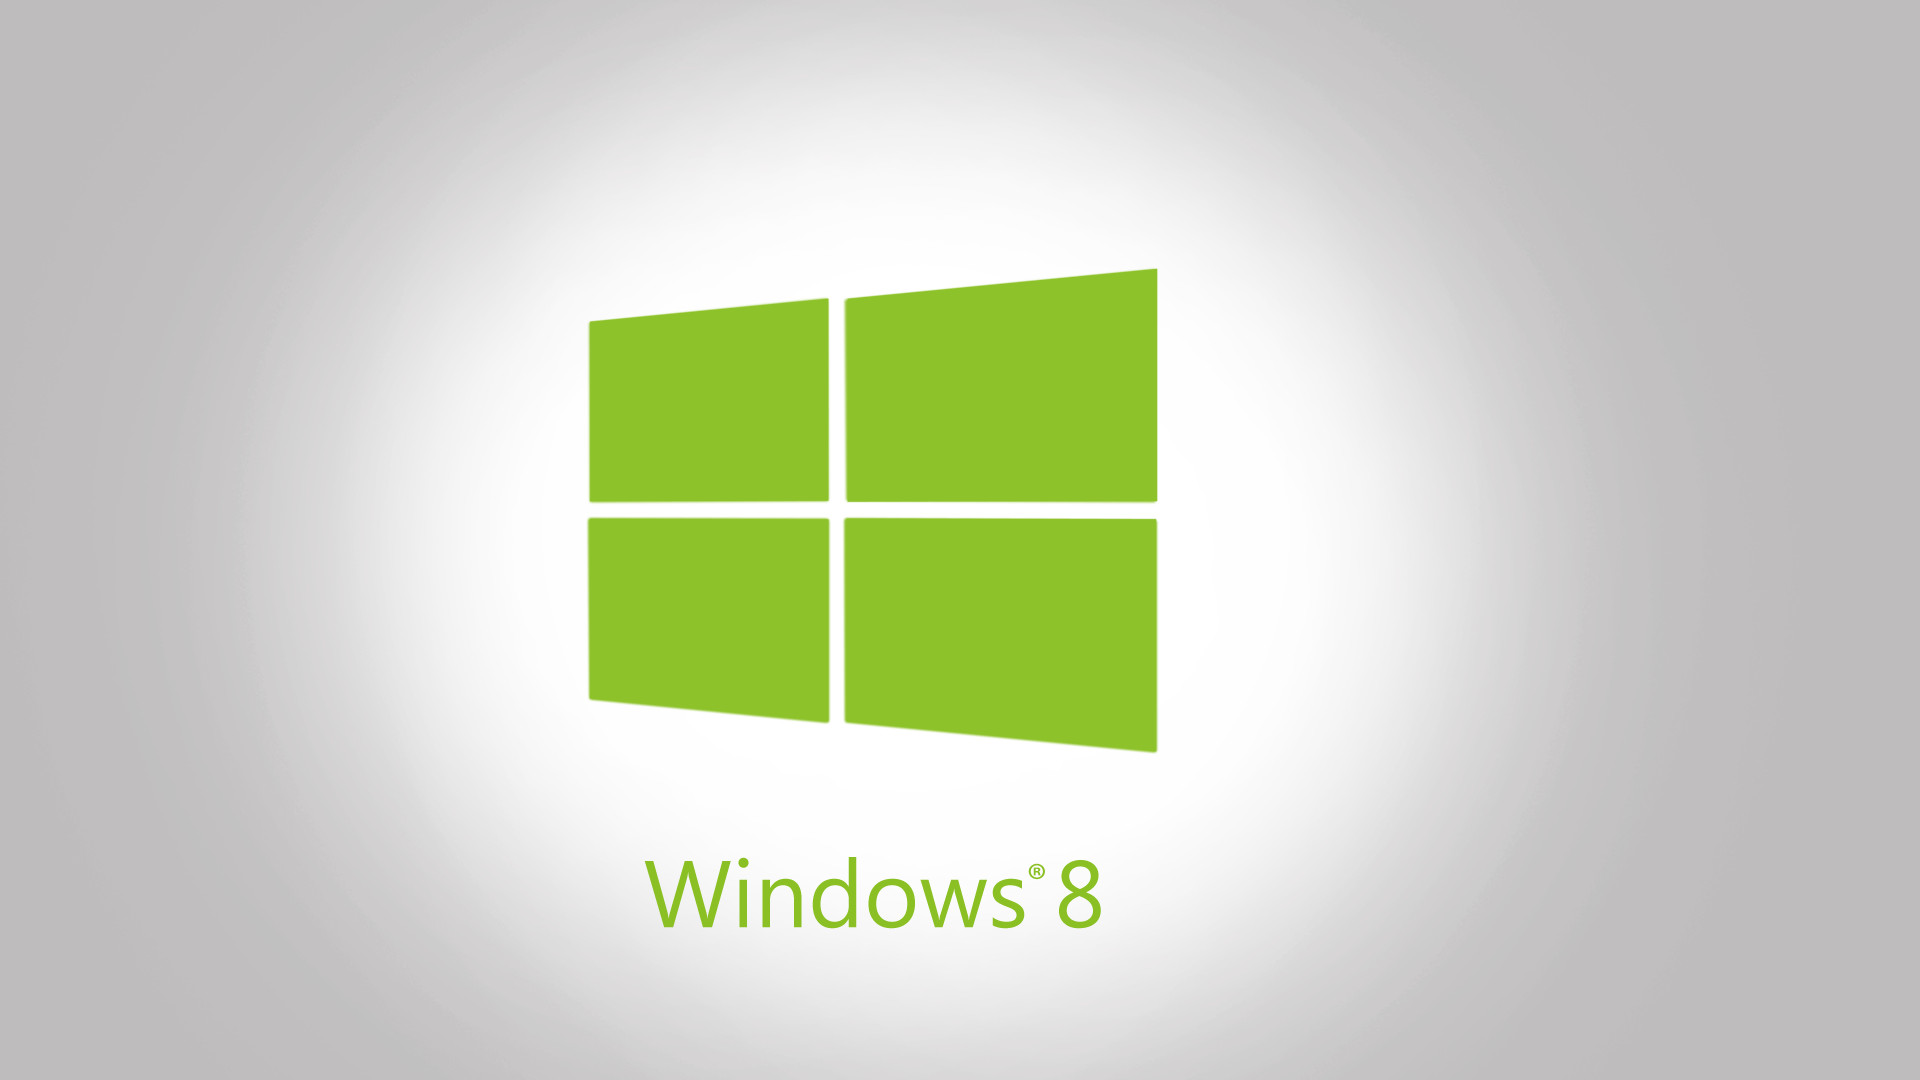 windows_8_green_by_silviu_eduard